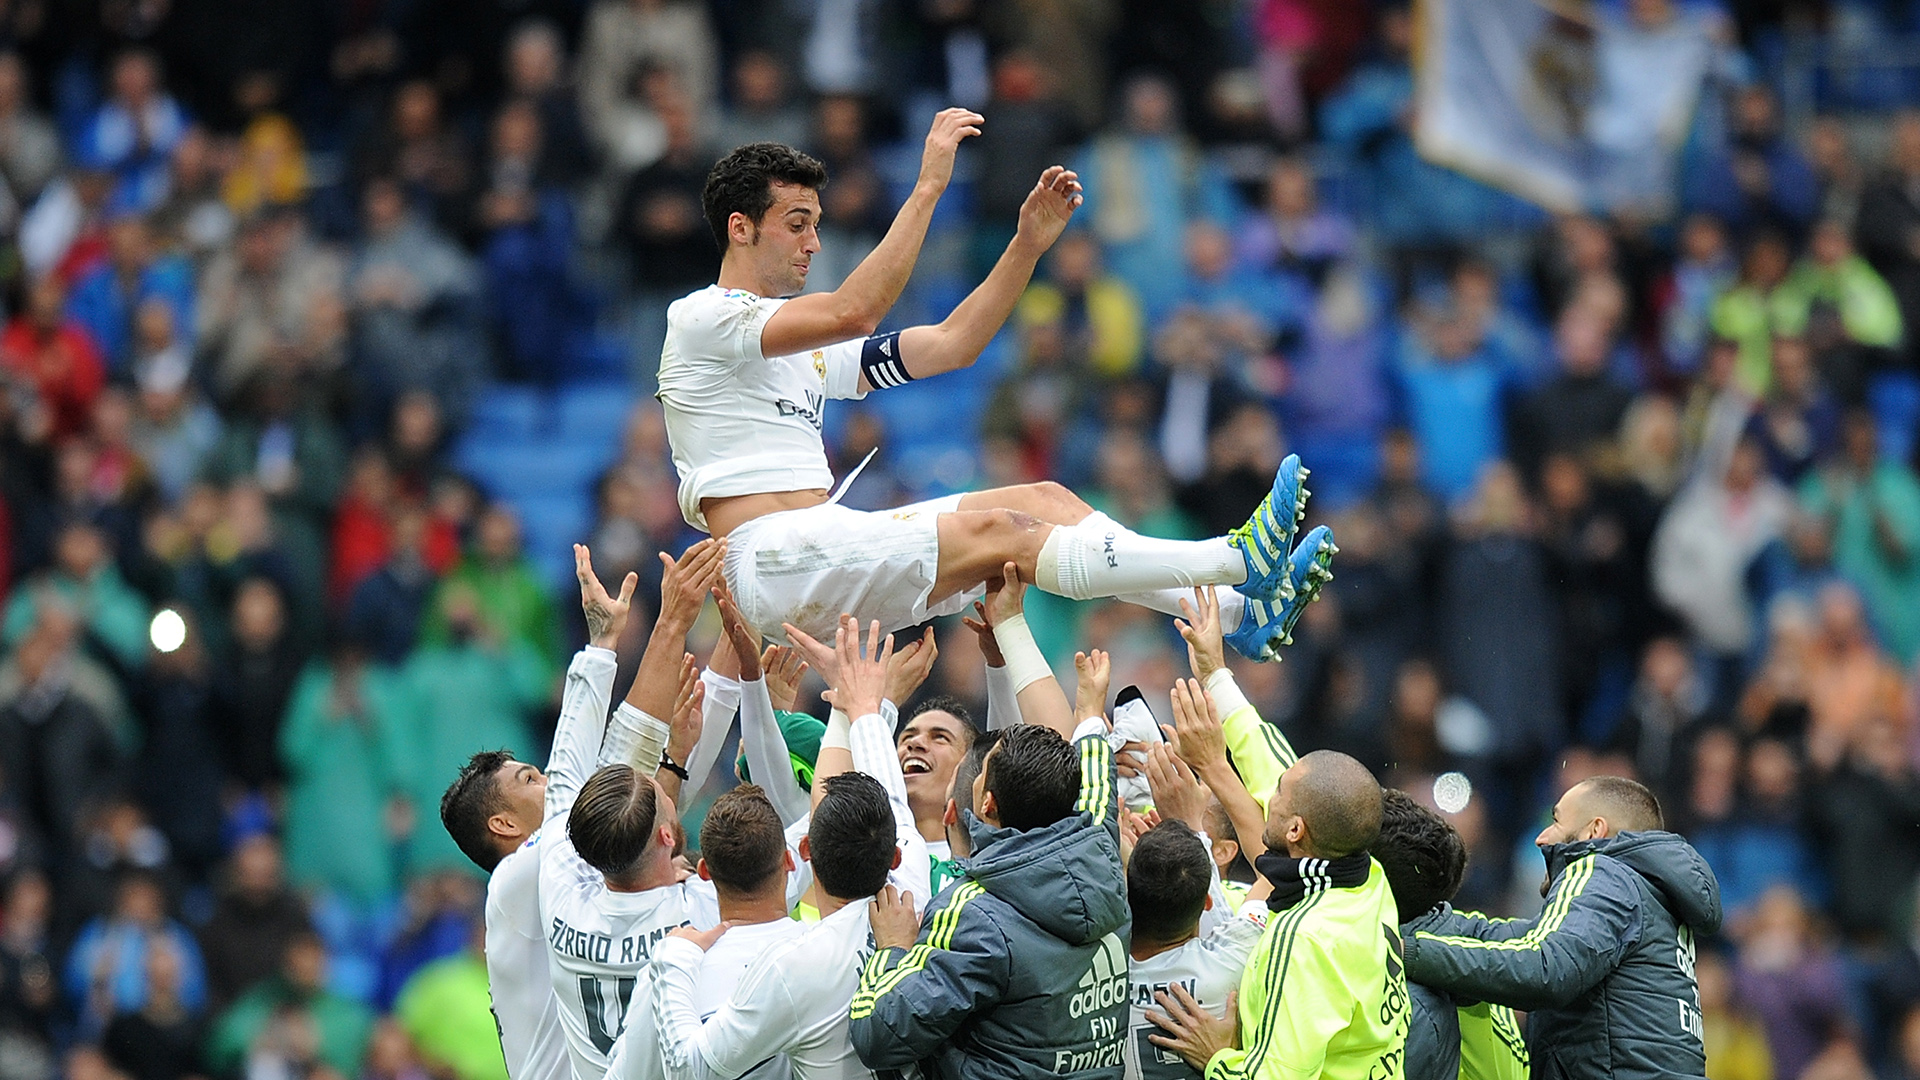 Alvario Arbeloa | Real Madrid